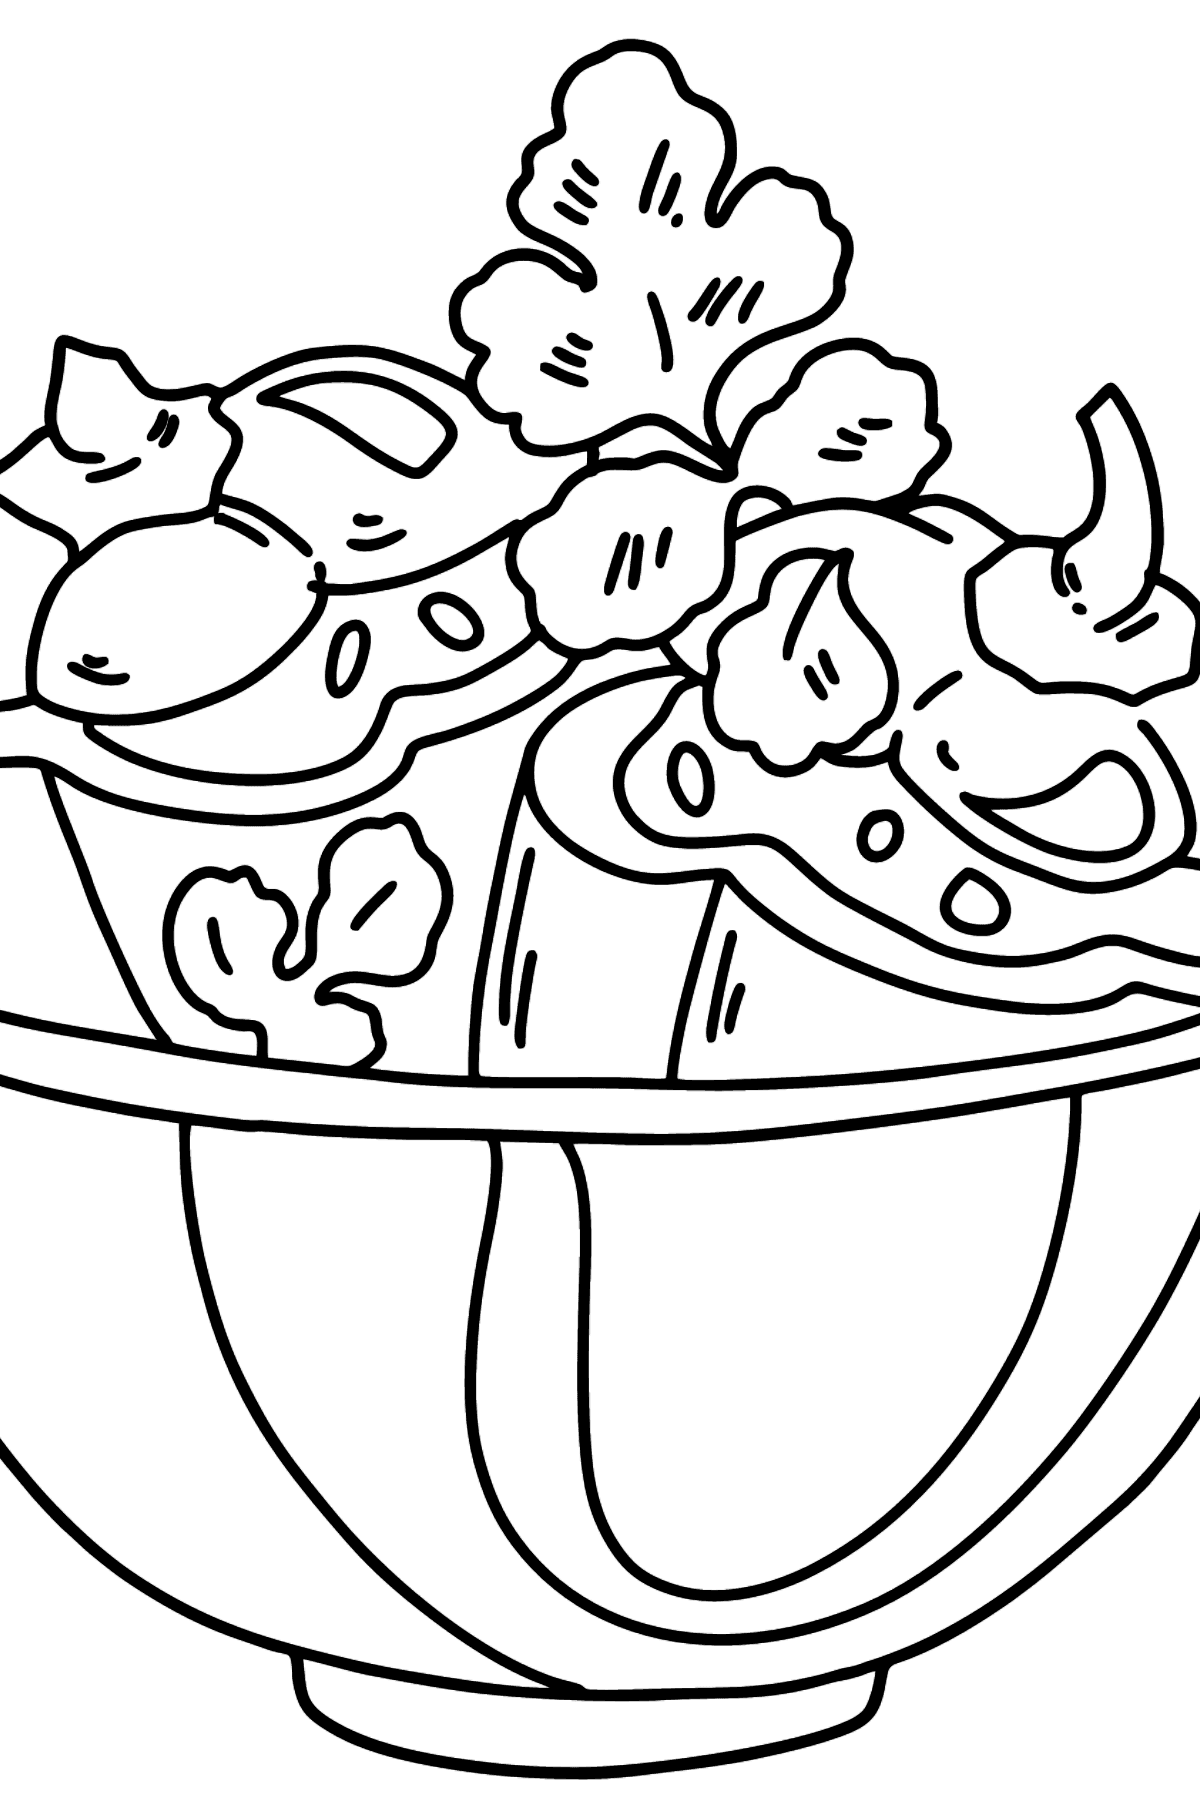 Coloring page lunch - stuffed peppers - Coloring Pages for Kids